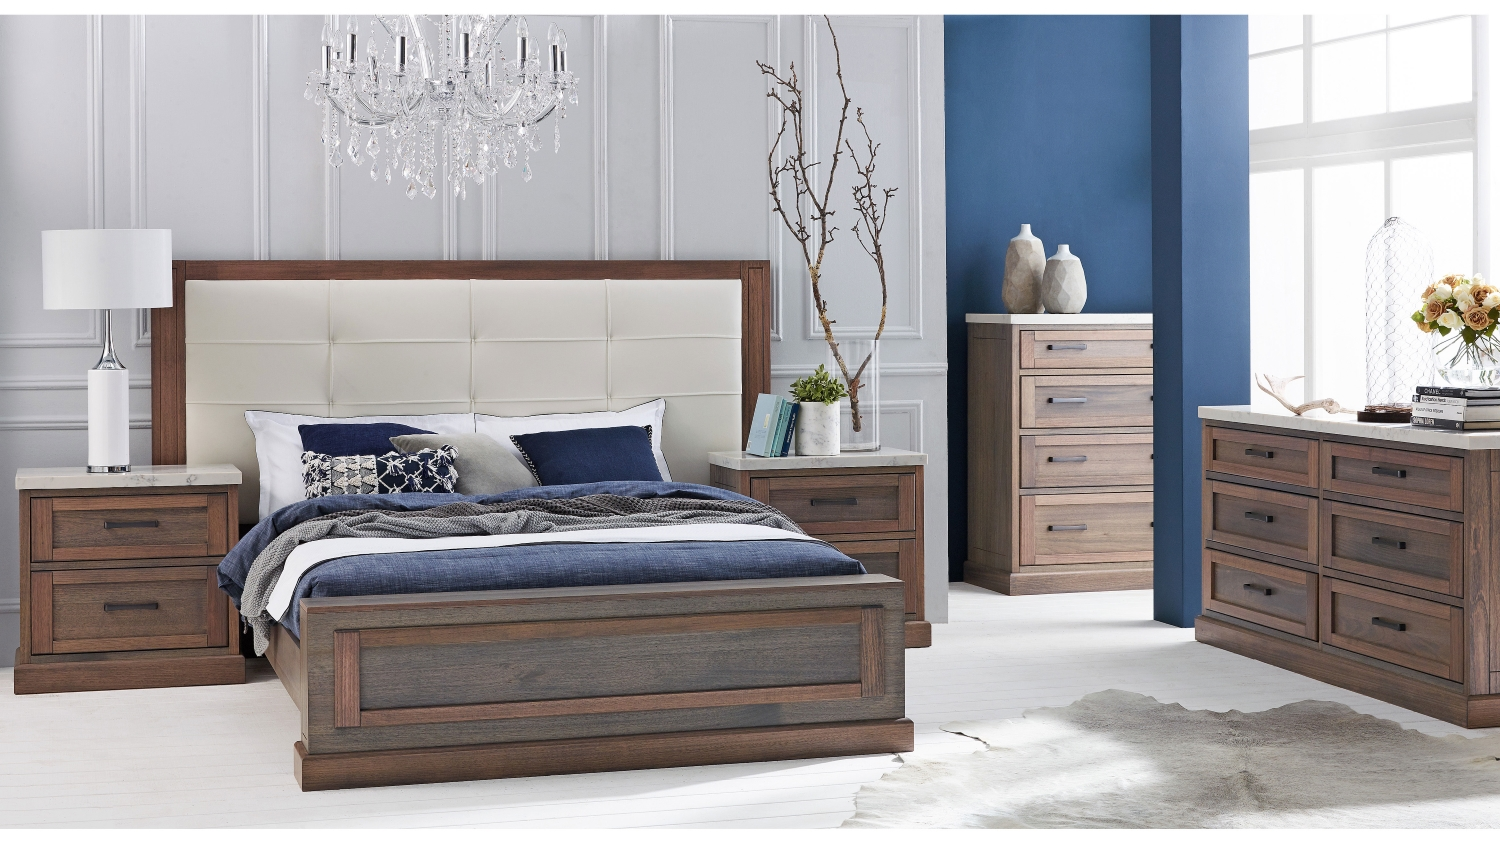 Domayne Wardrobes Hamptons Bed Frame With Leather Bedhead Domayne